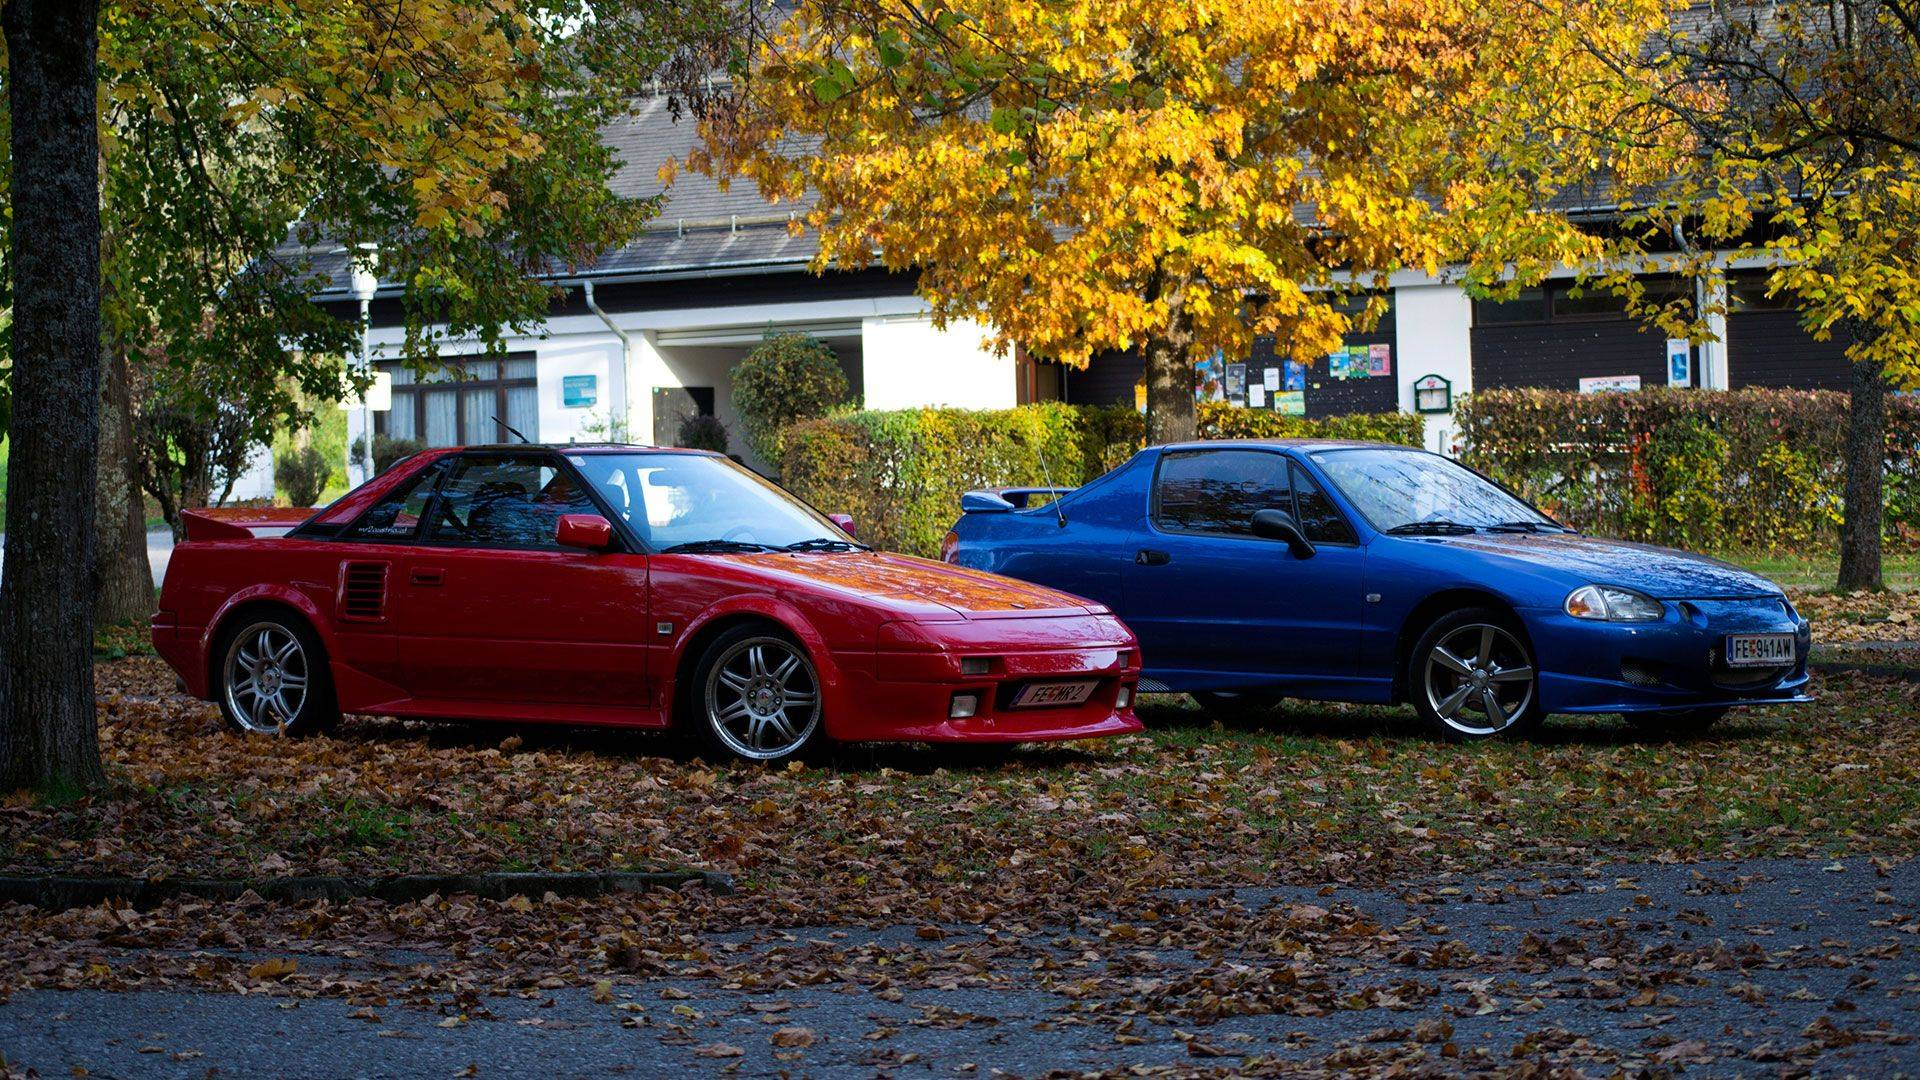 Toyota MR2 AW11 - Honda Civic CRX delsol